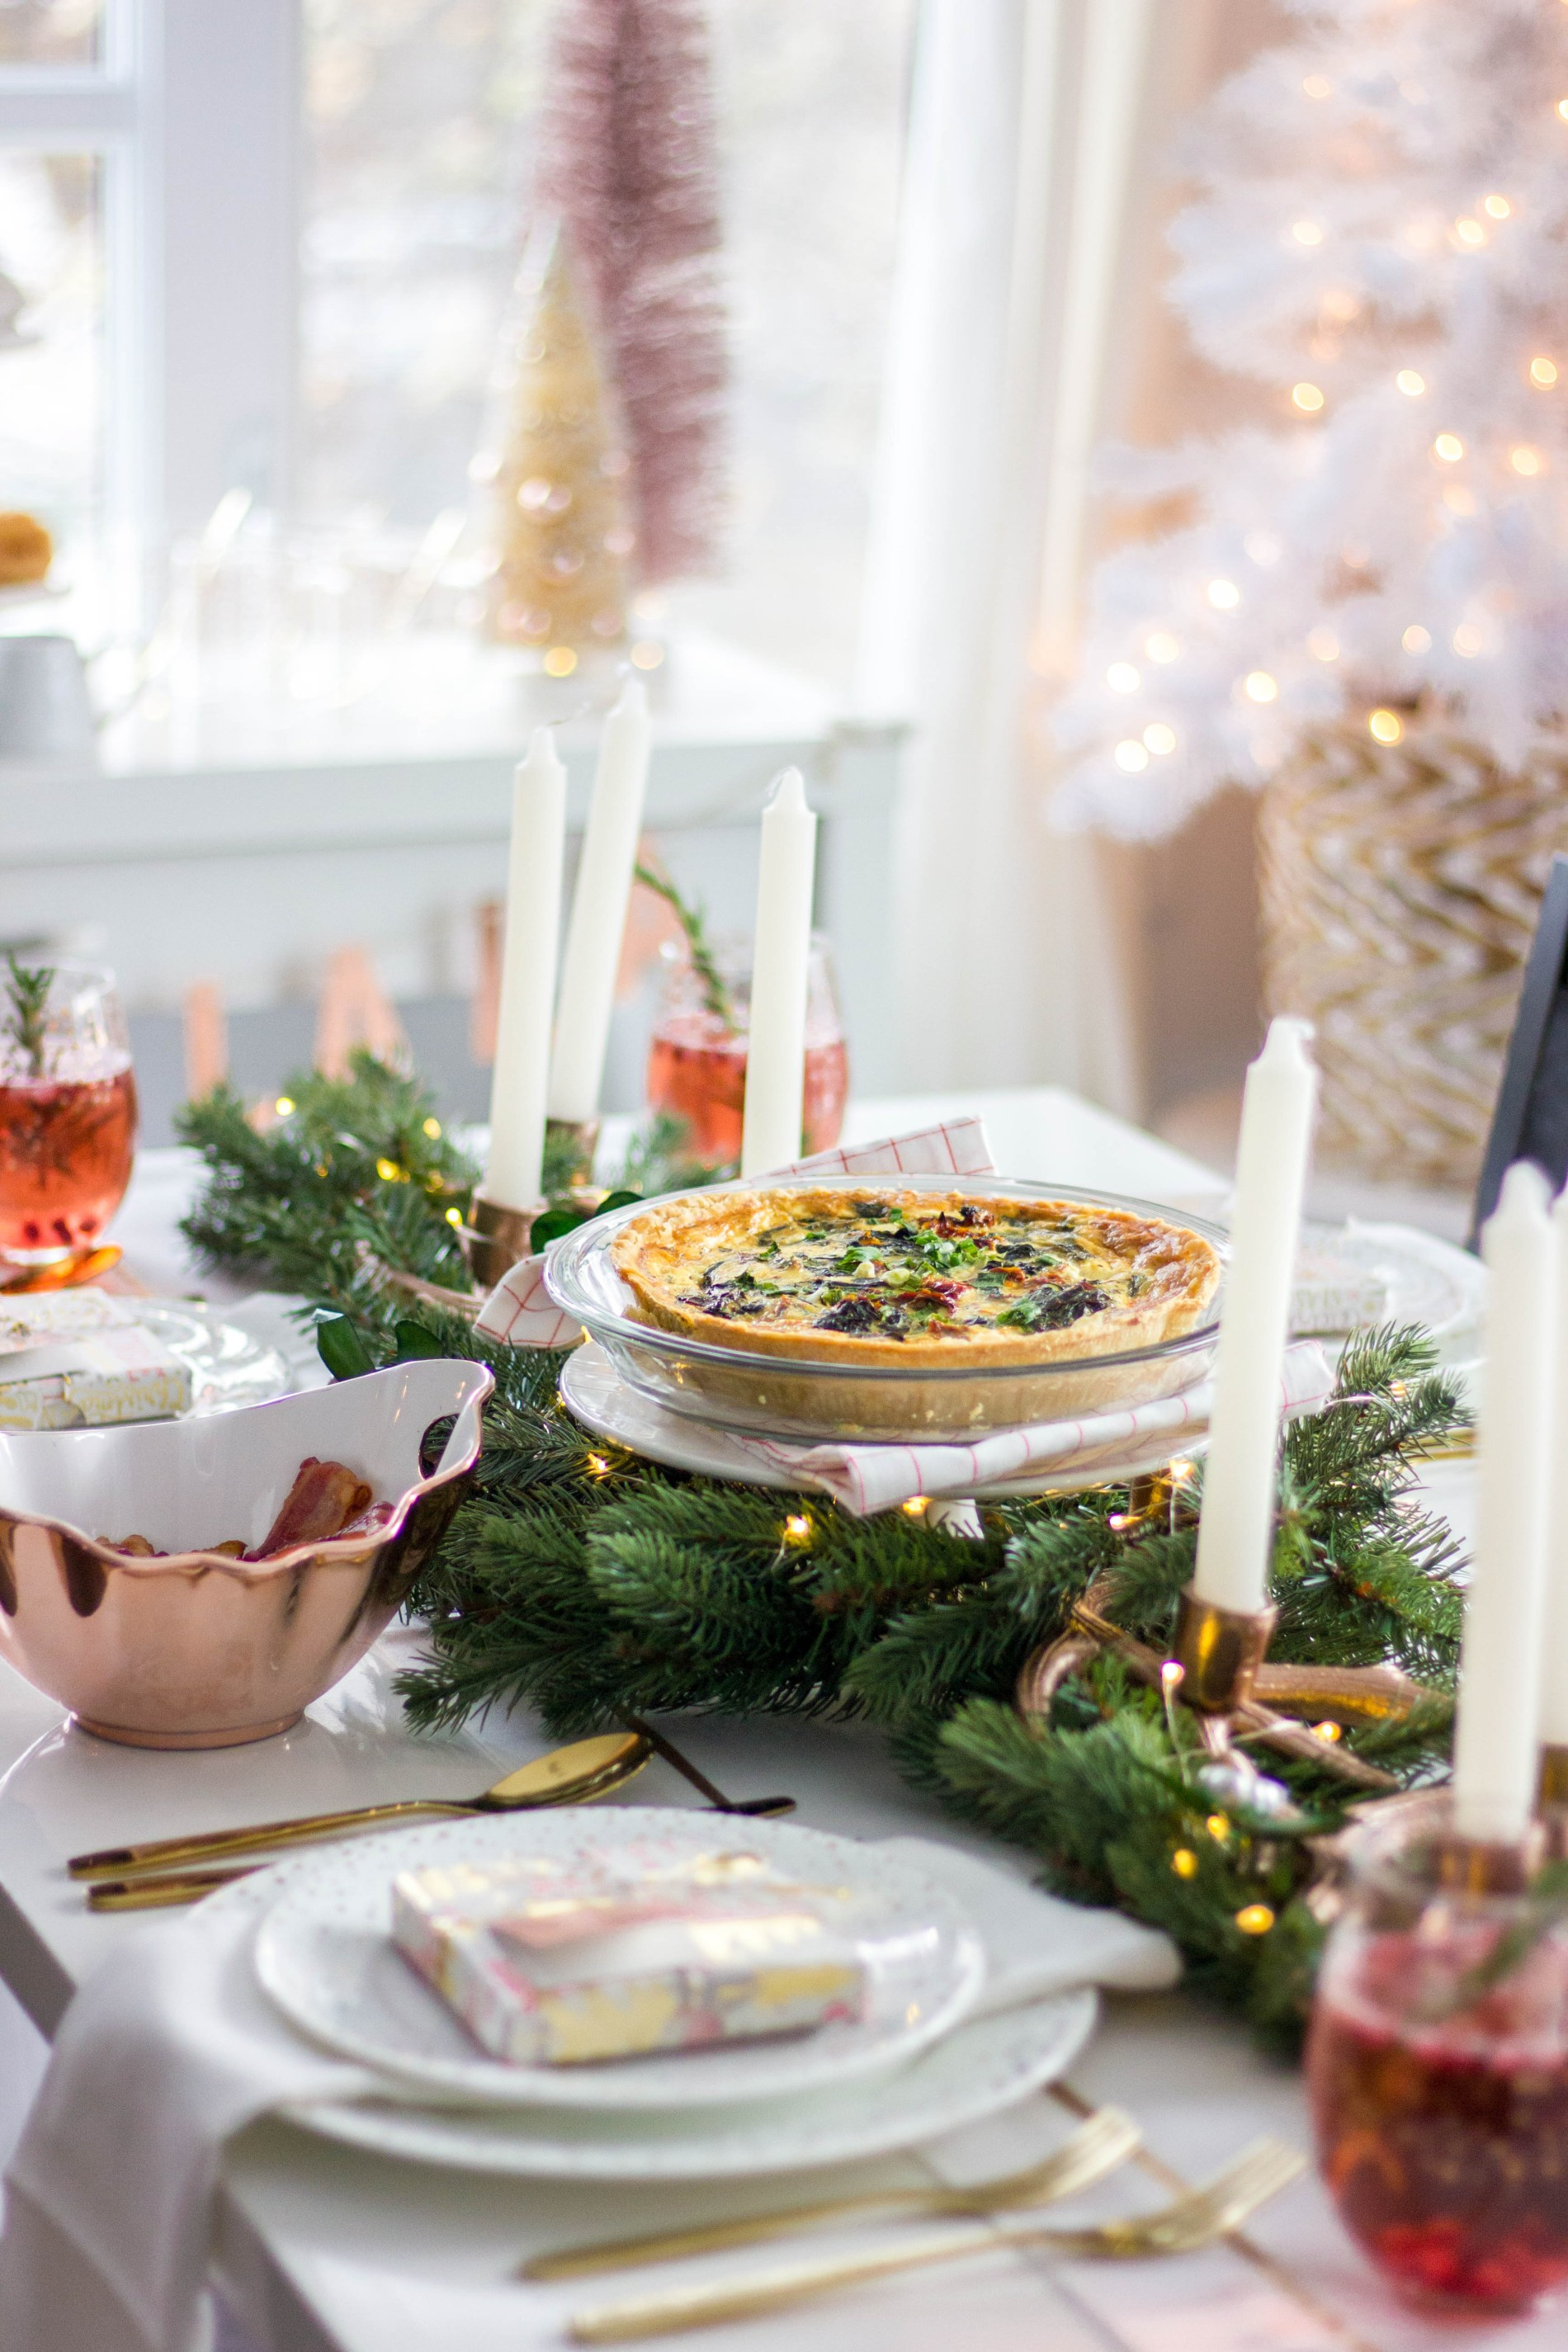 How To Throw The Ultimate Girls Holiday Brunch- How to throw the ultimate girls holiday brunch-'Tis the season for sparkle, cocktails, and all the holiday parties! I'm sharing my top tips on how to throw the ultimate girls holiday brunch, stress-free.